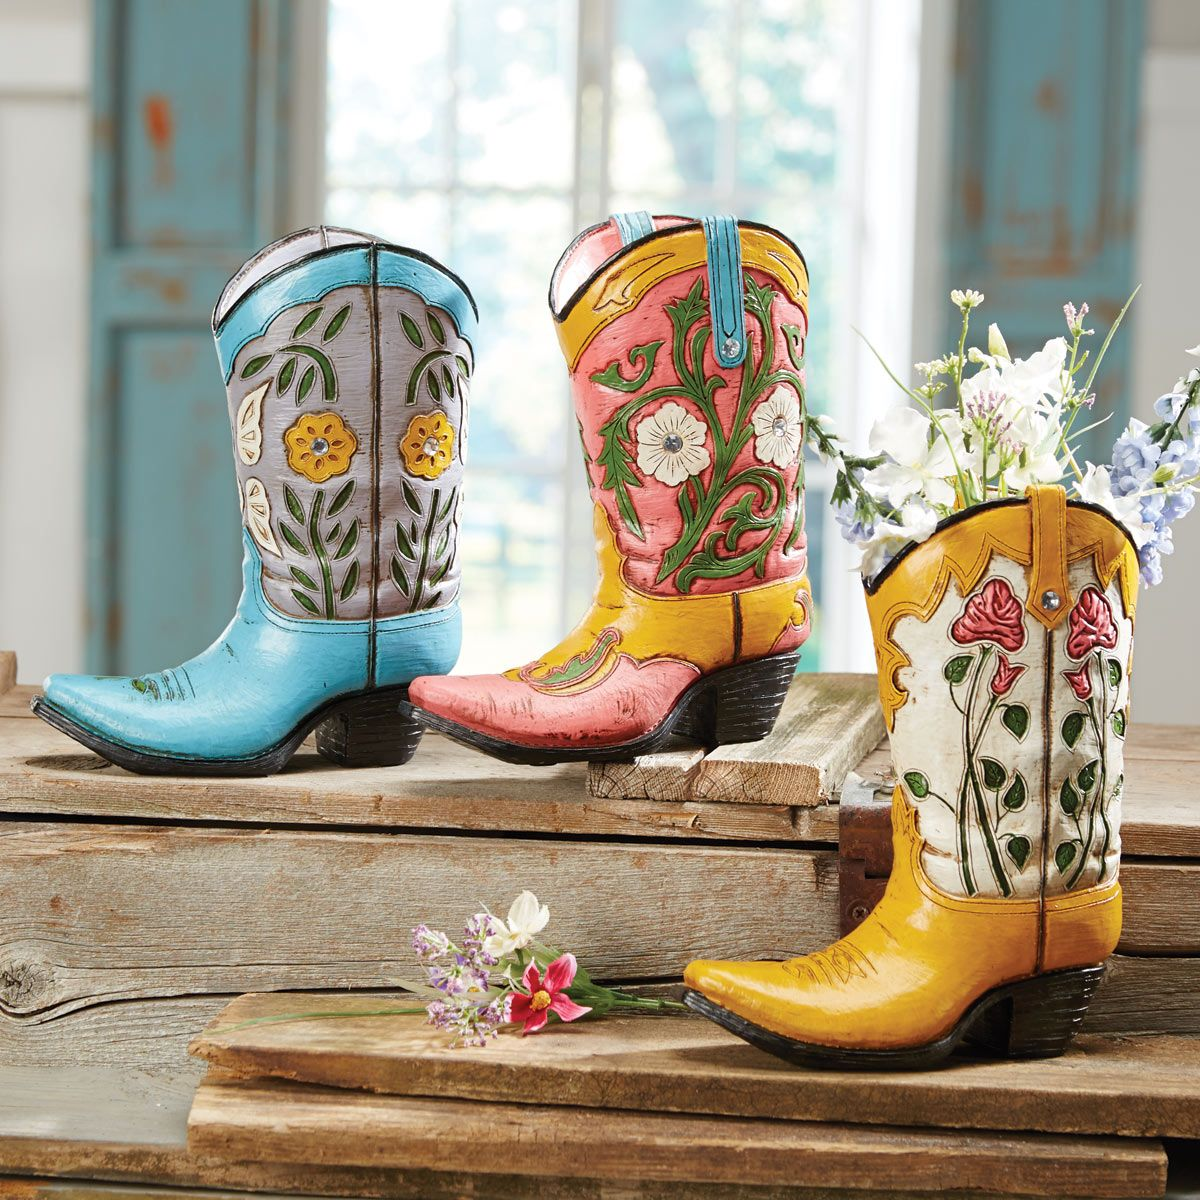 b8aa9fe78be Western Decor & Cowboy Gifts from Lone Star Home Decor